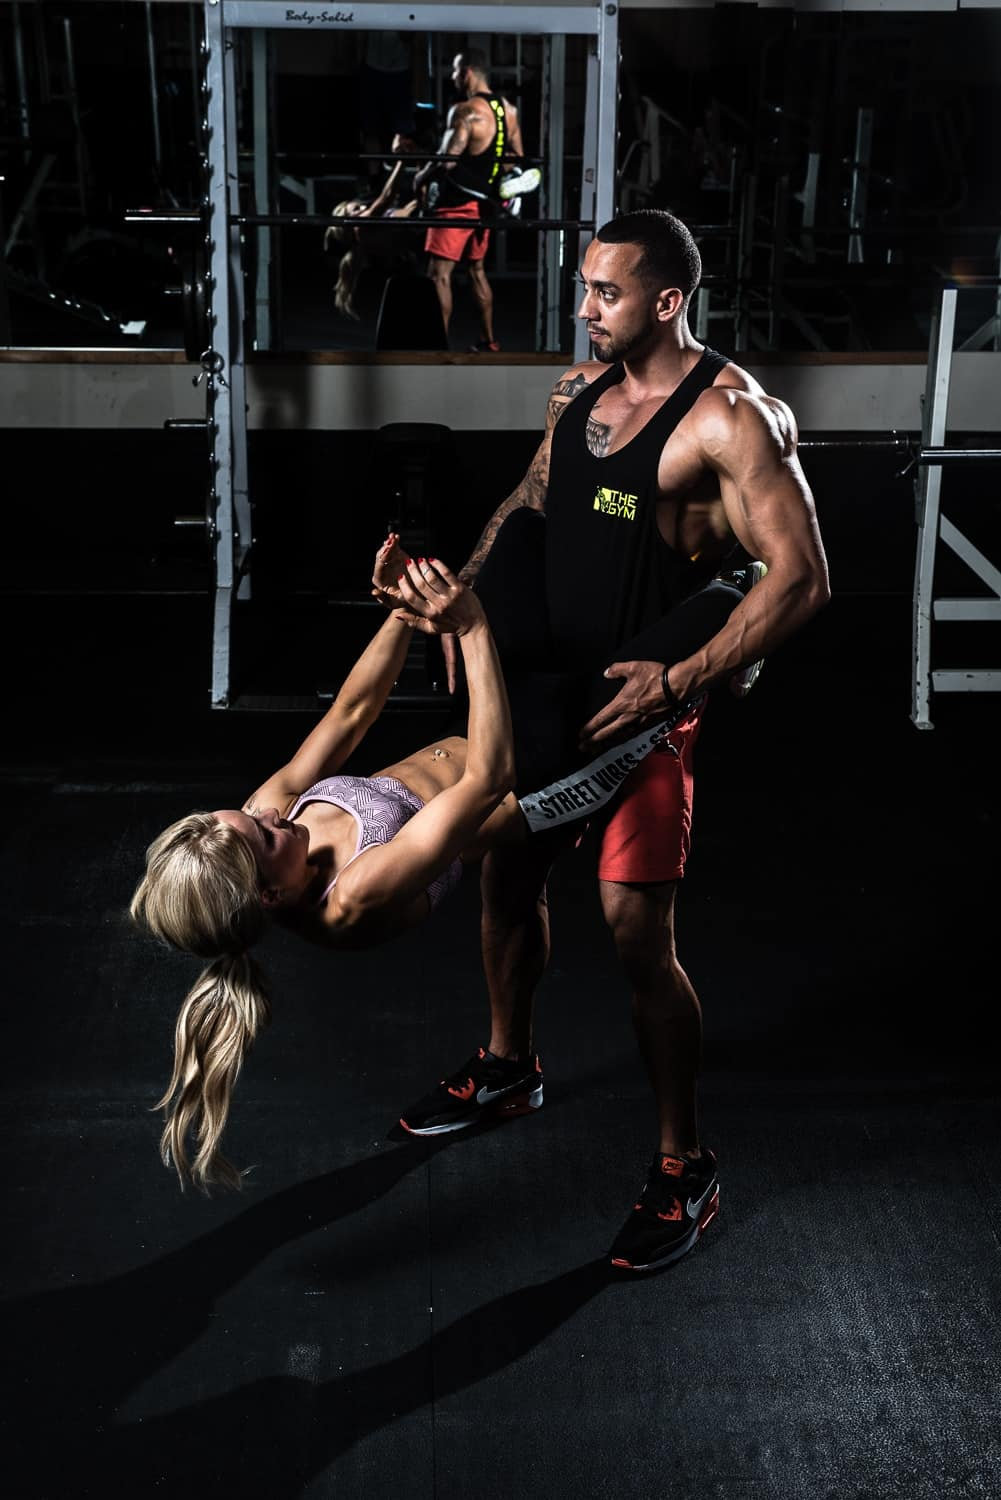 Fitness Photography 2014